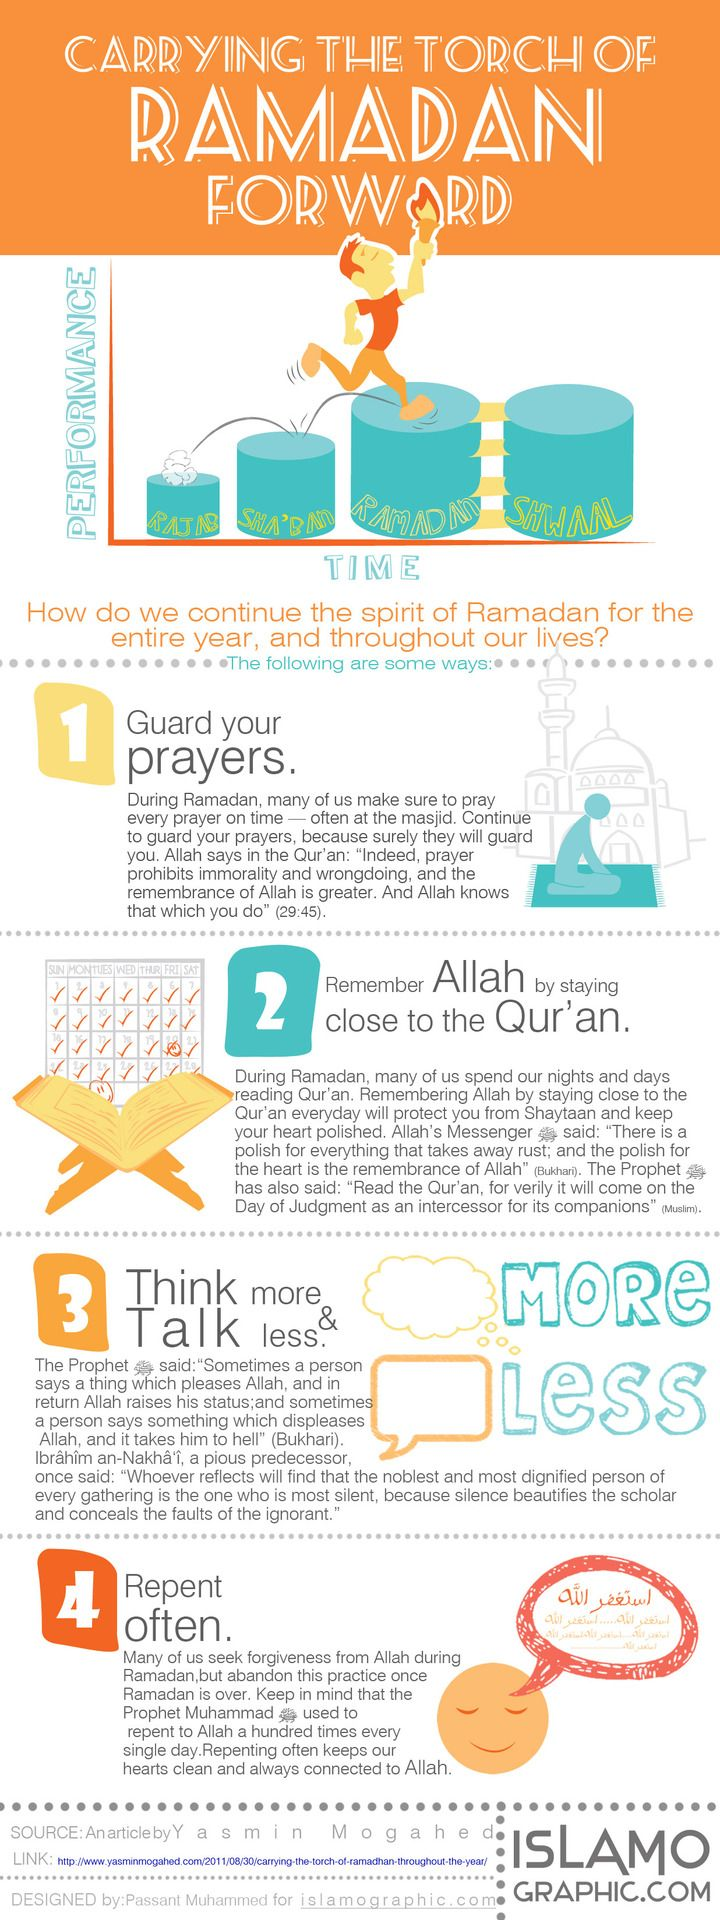 An Islamographic based on an article by Yasmin Mogahed Carrying the TORCH OF RAMADAN FORWARD inshallah!